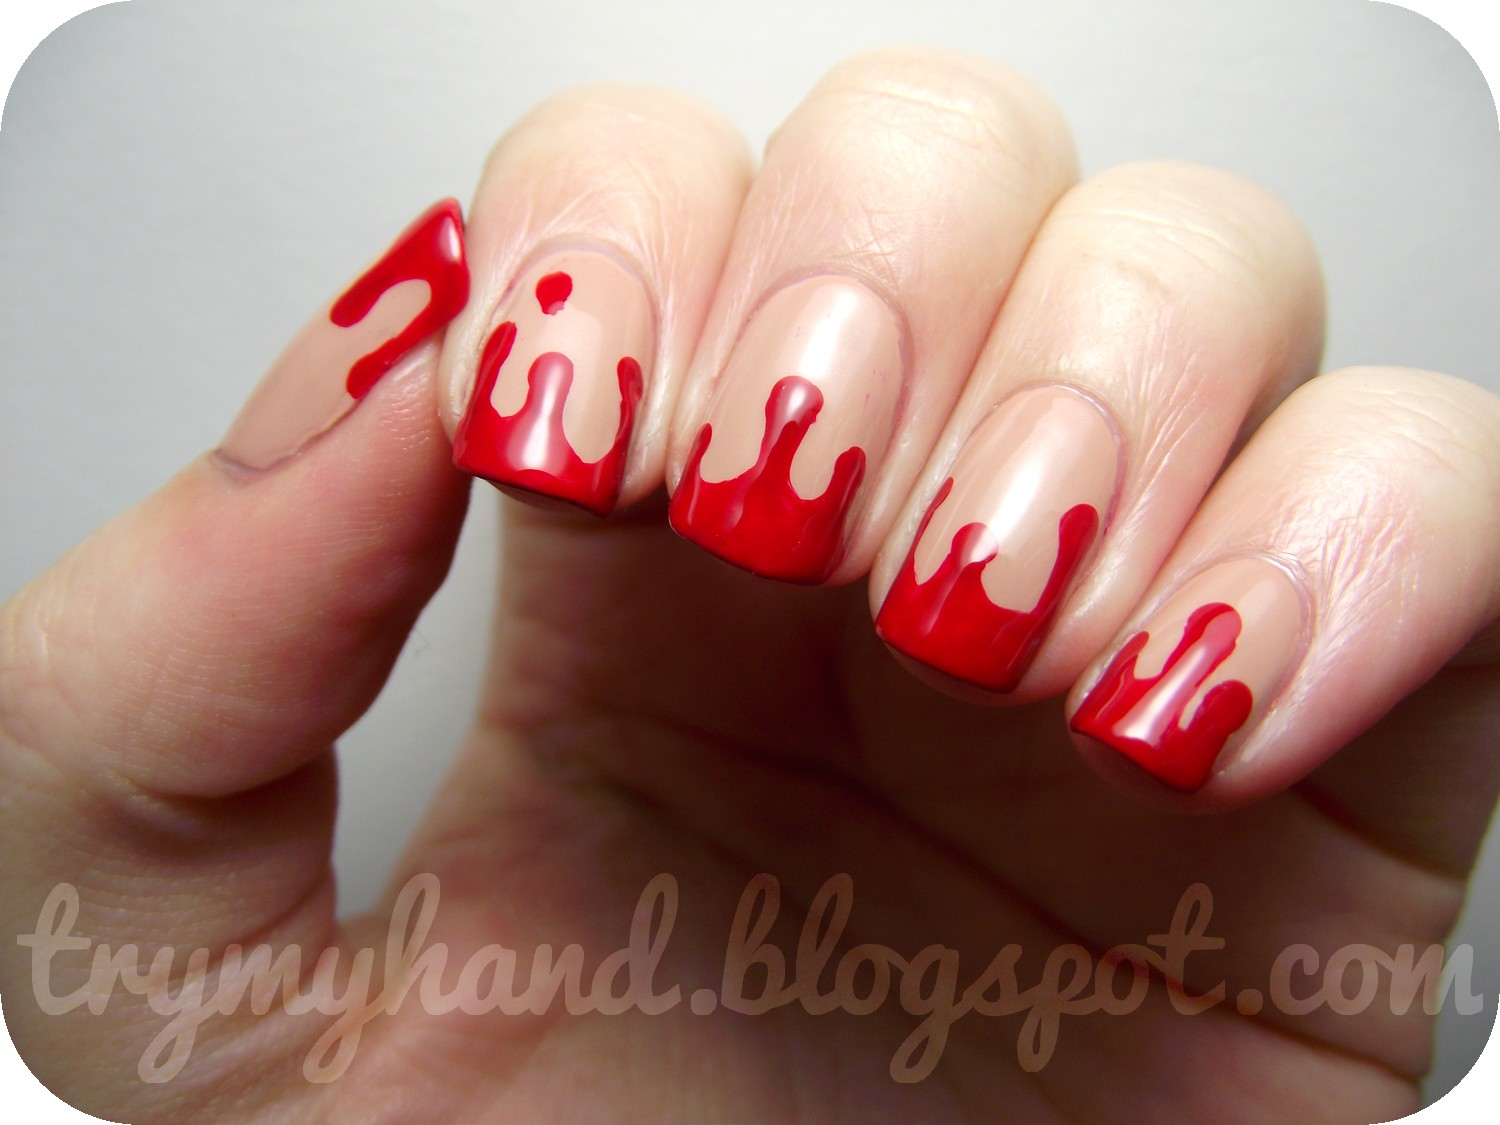 Try my hand halloween nails blood drips for this design i only used two different polishes p2 elegant for the nude base colour and then opi big apple red for the blood for the actual design prinsesfo Gallery